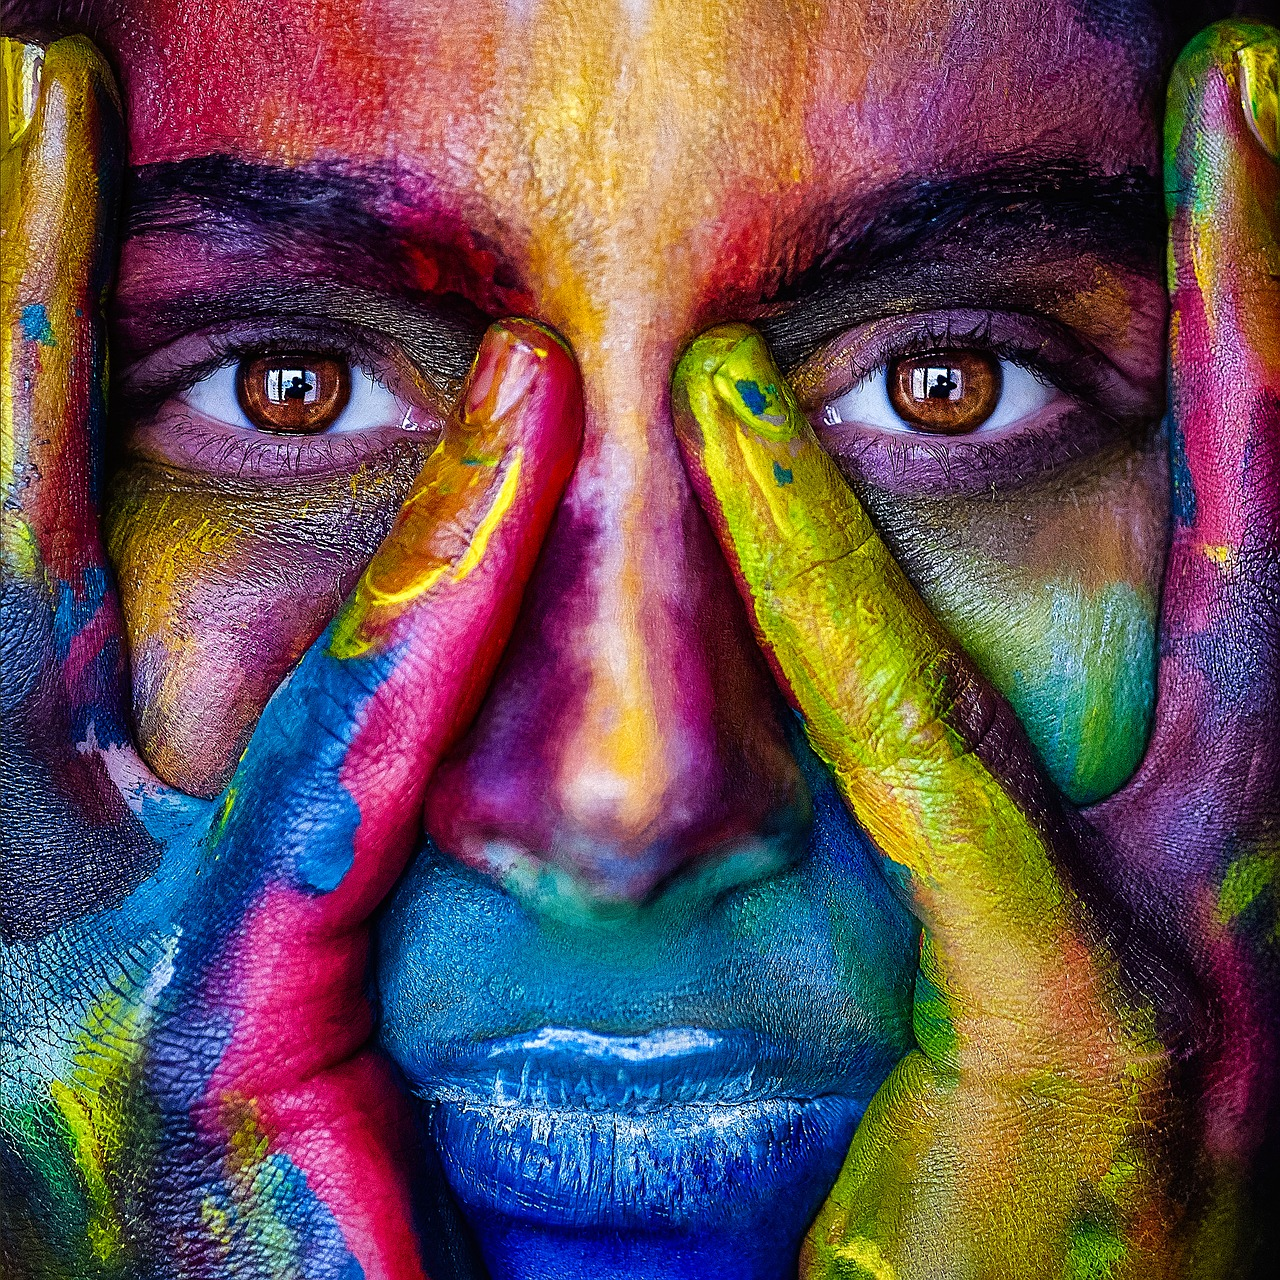 image of human face painted with neon colors